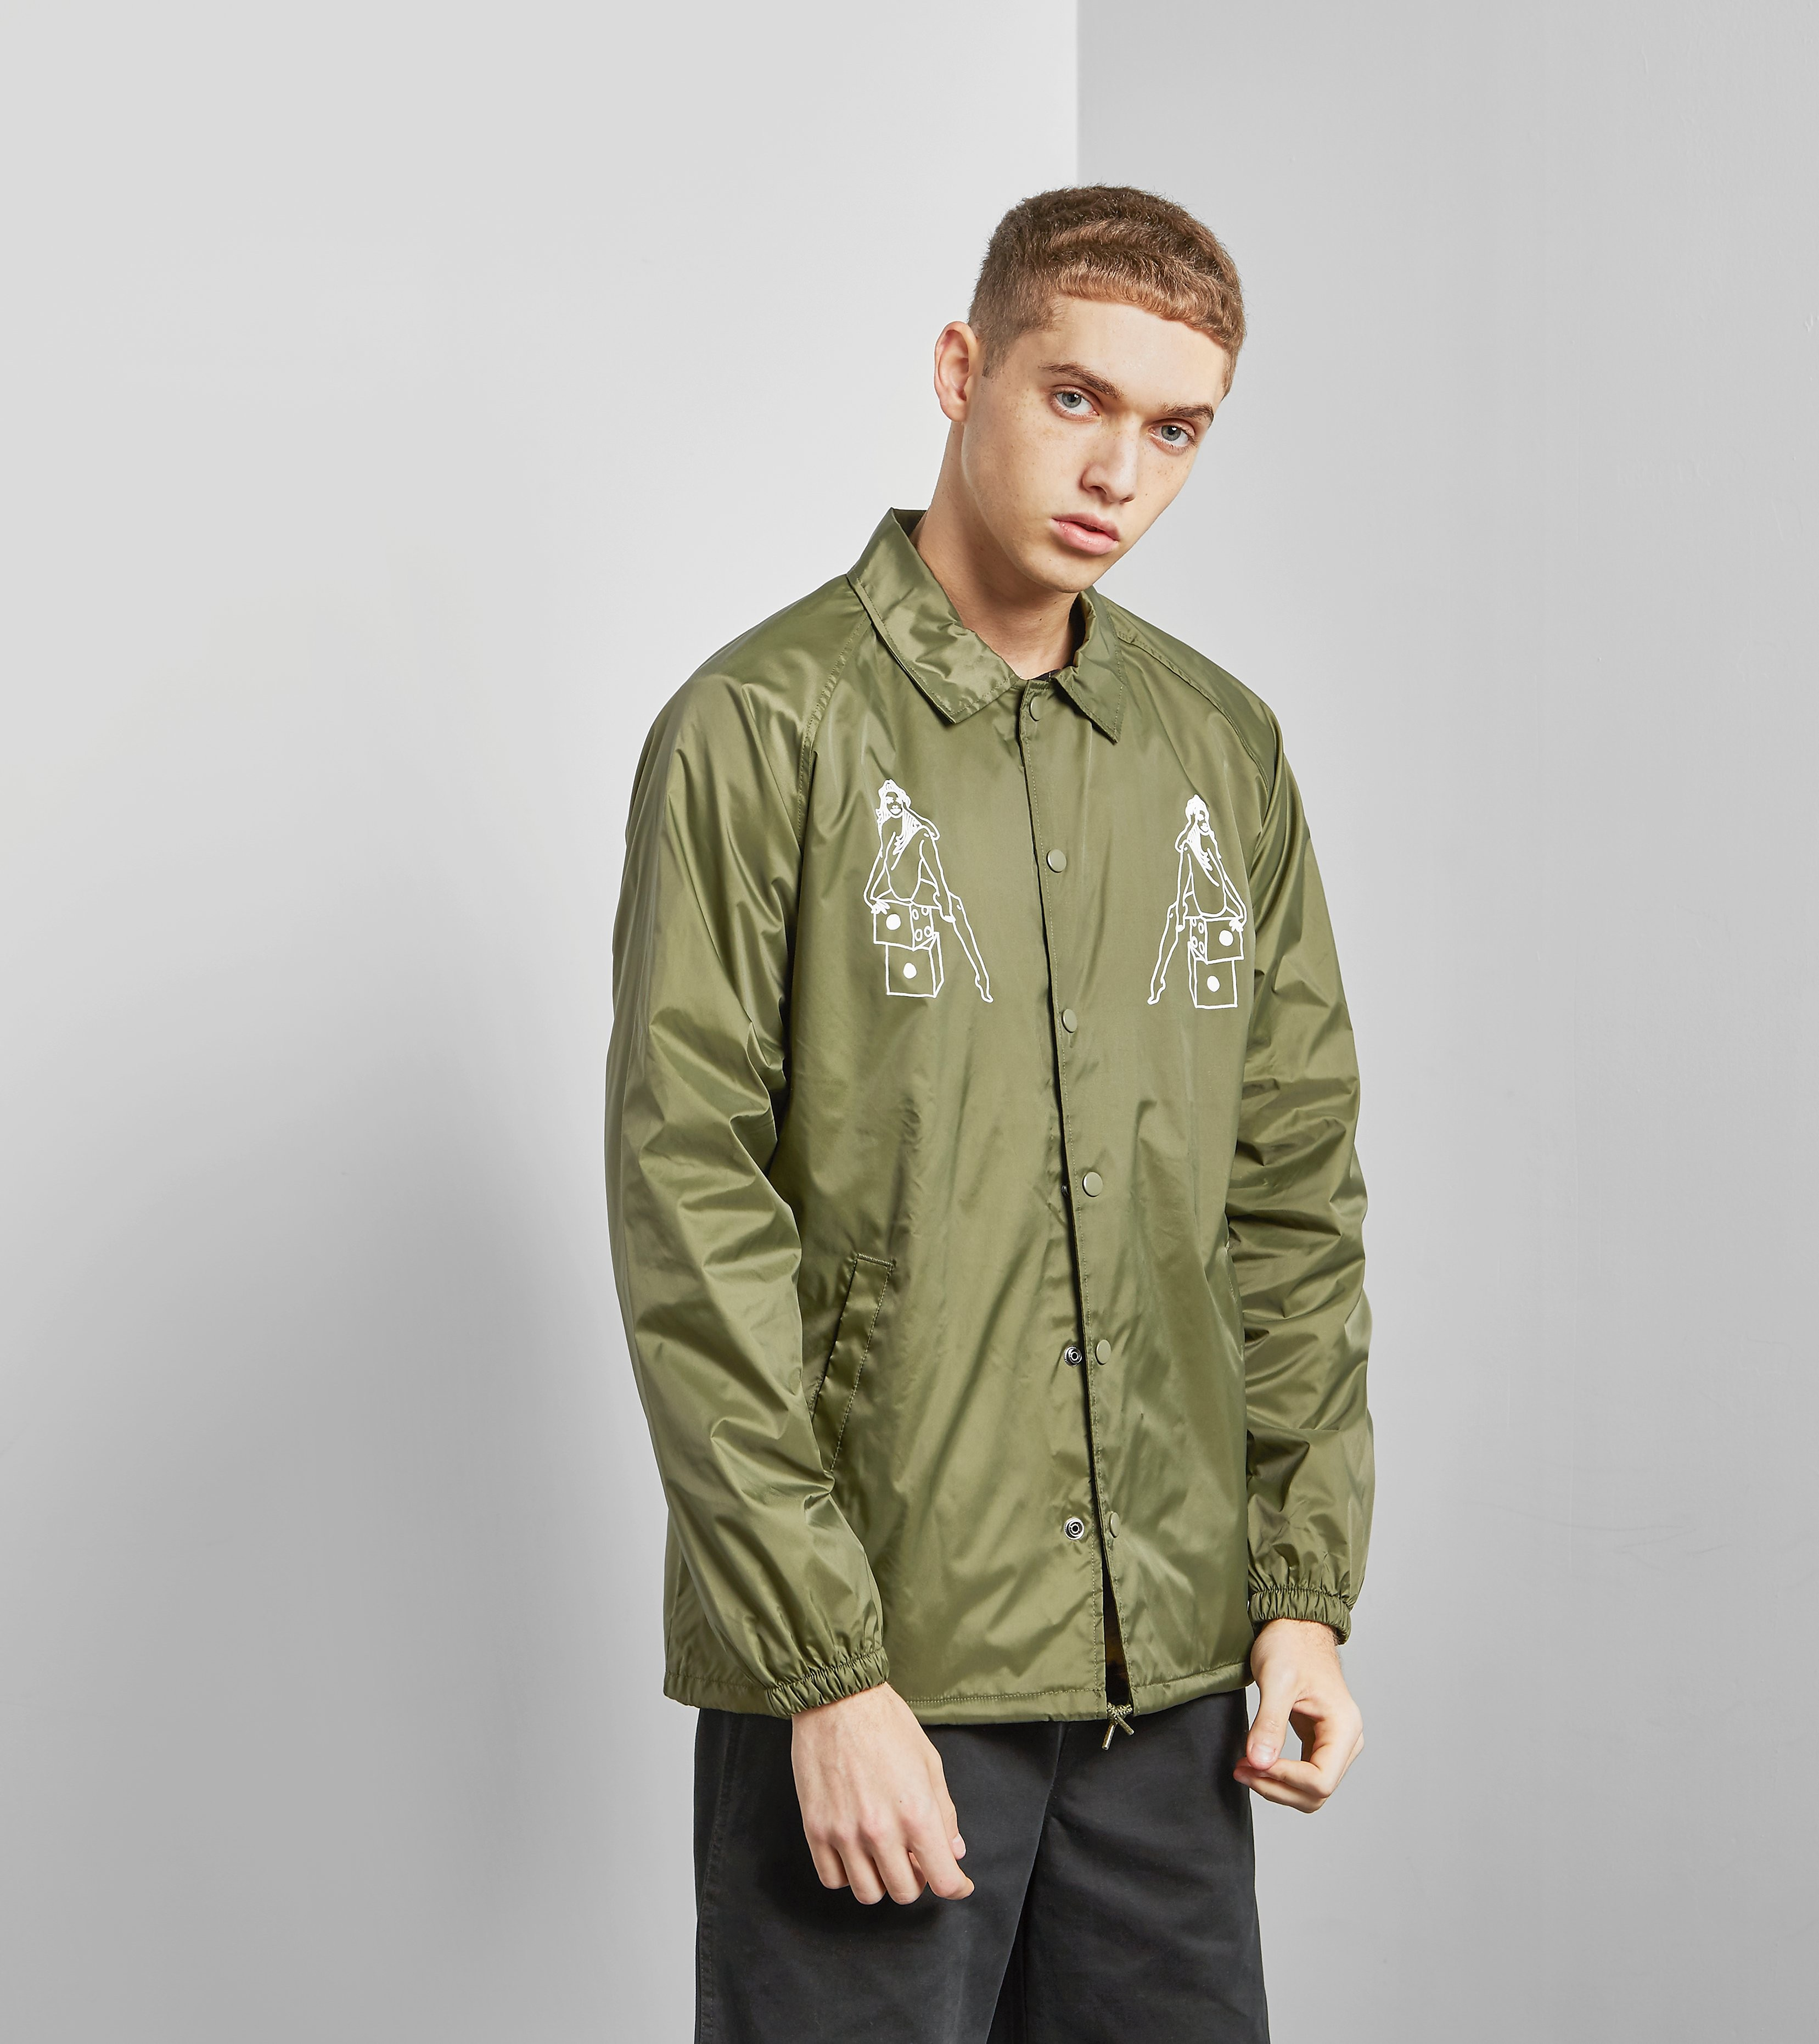 Obey Born To Lose Jacket